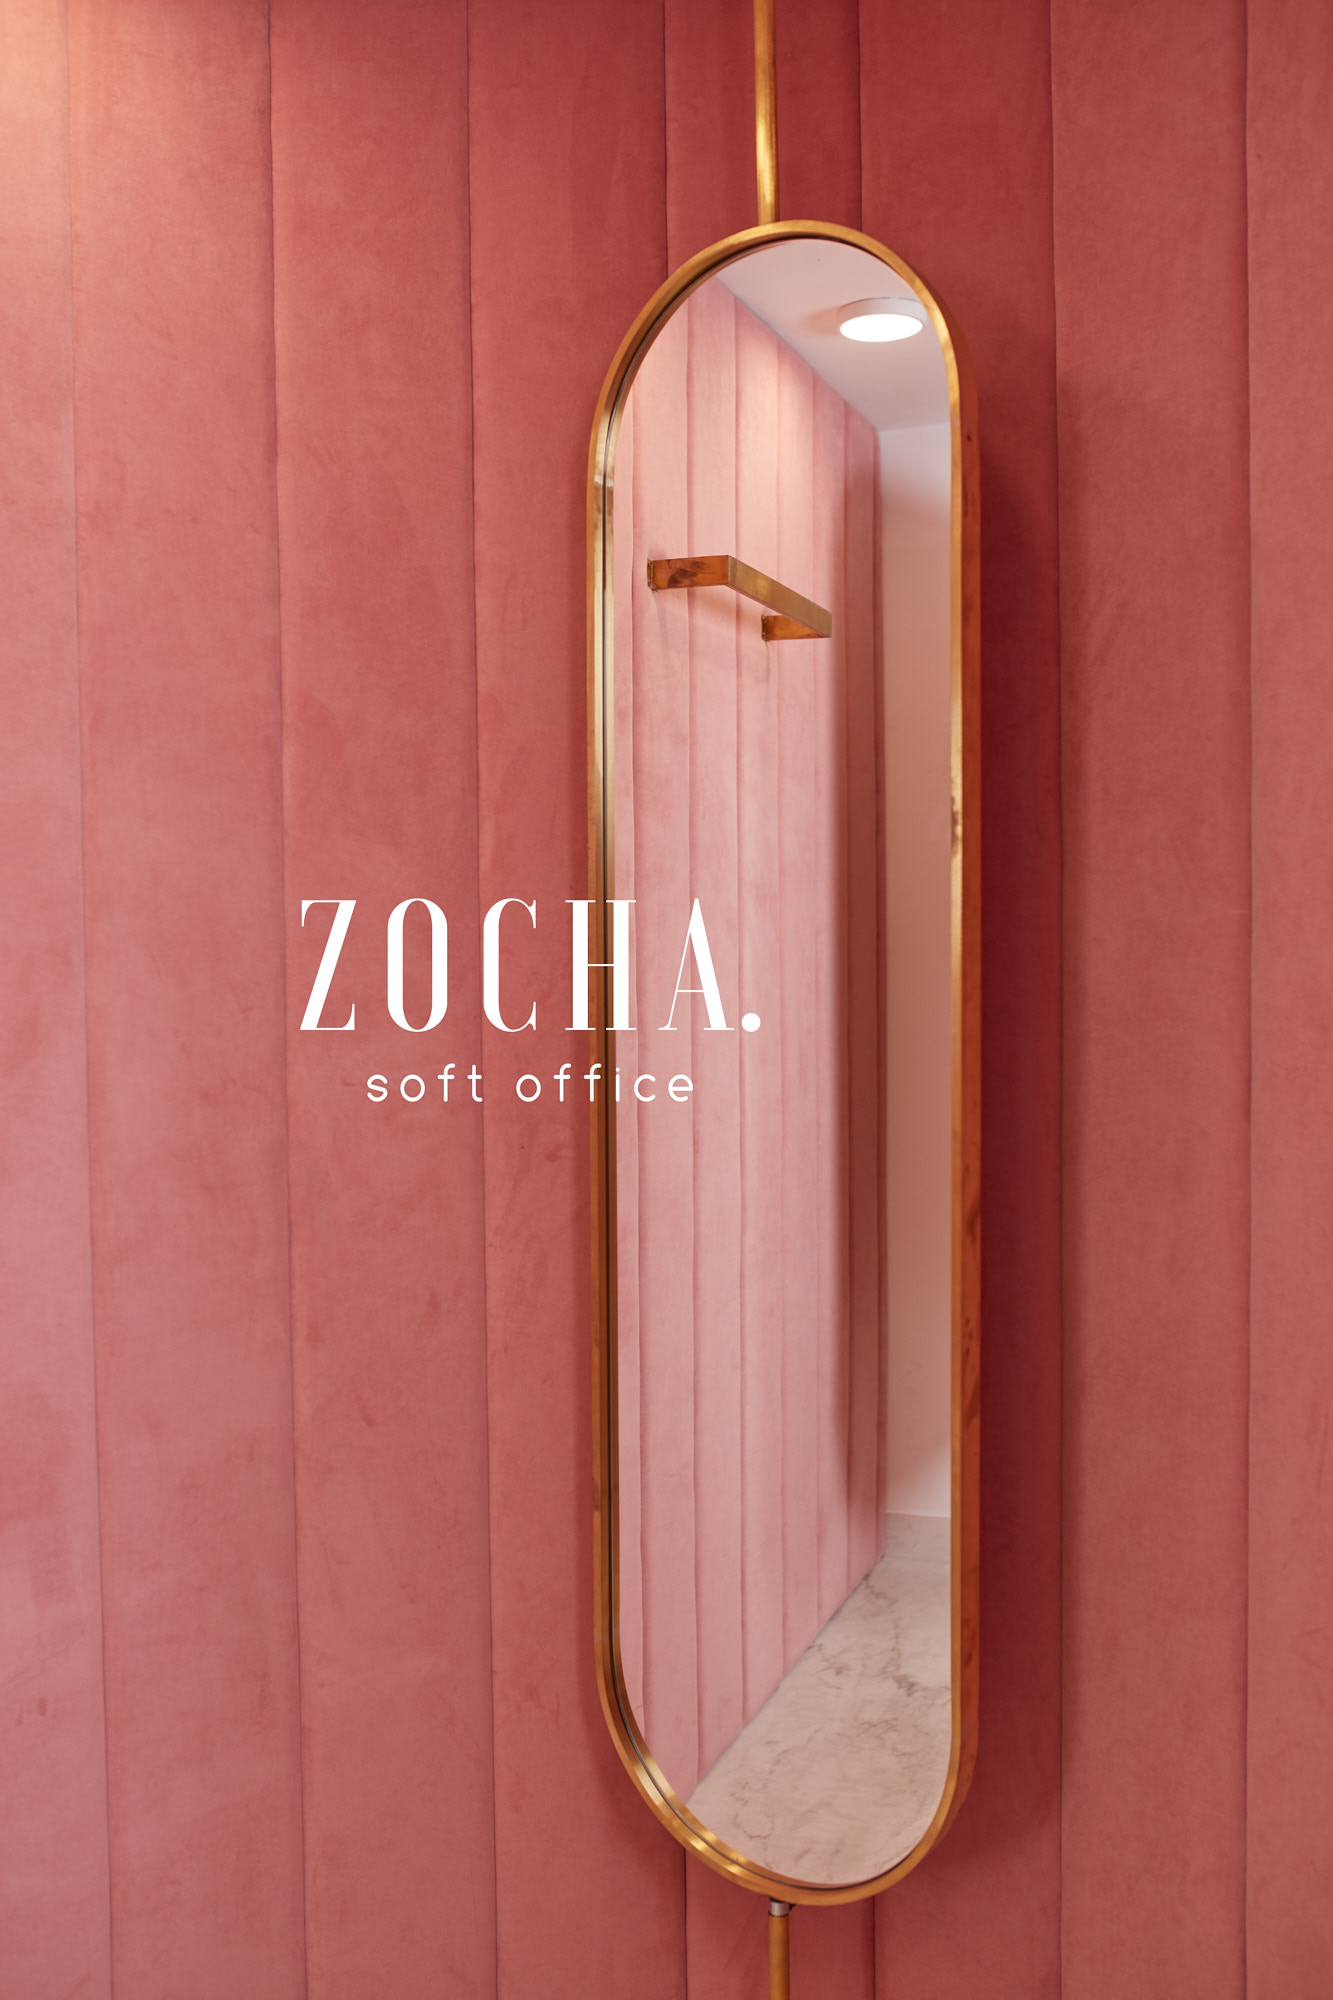 Fashion photographer | Zocha AW18